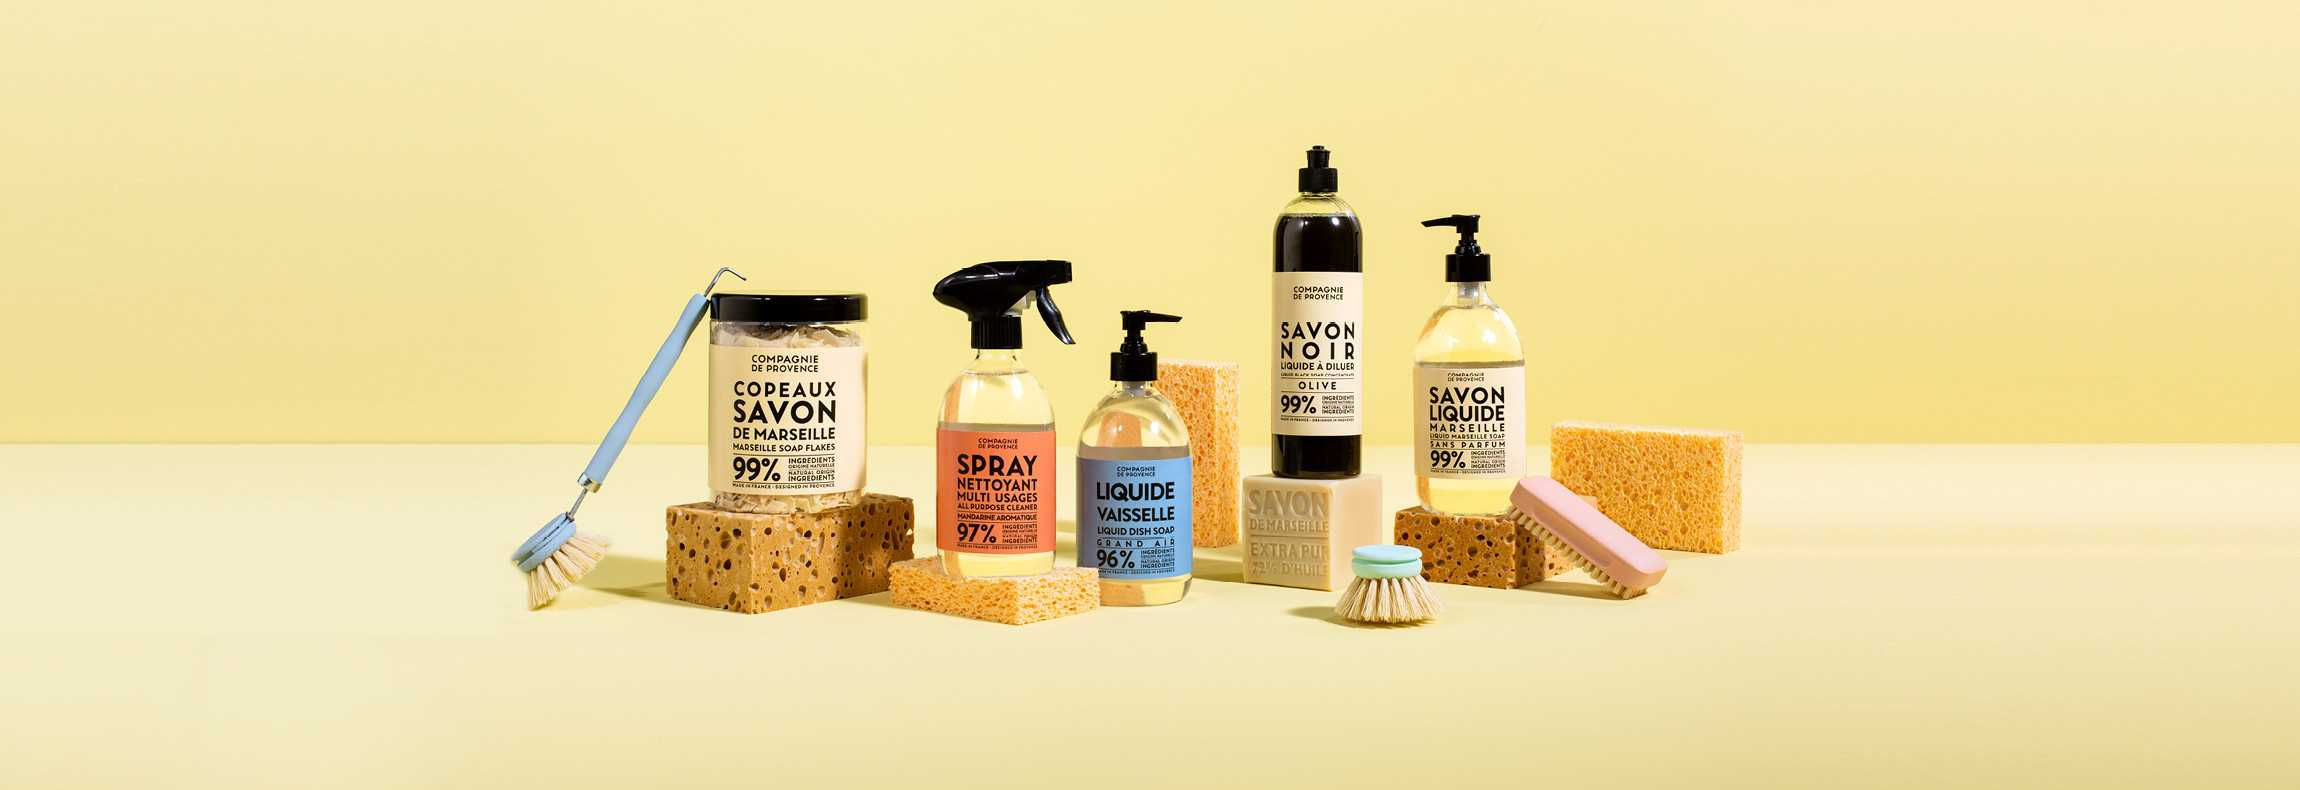 La Compagnie de Provence | Cleaning Products